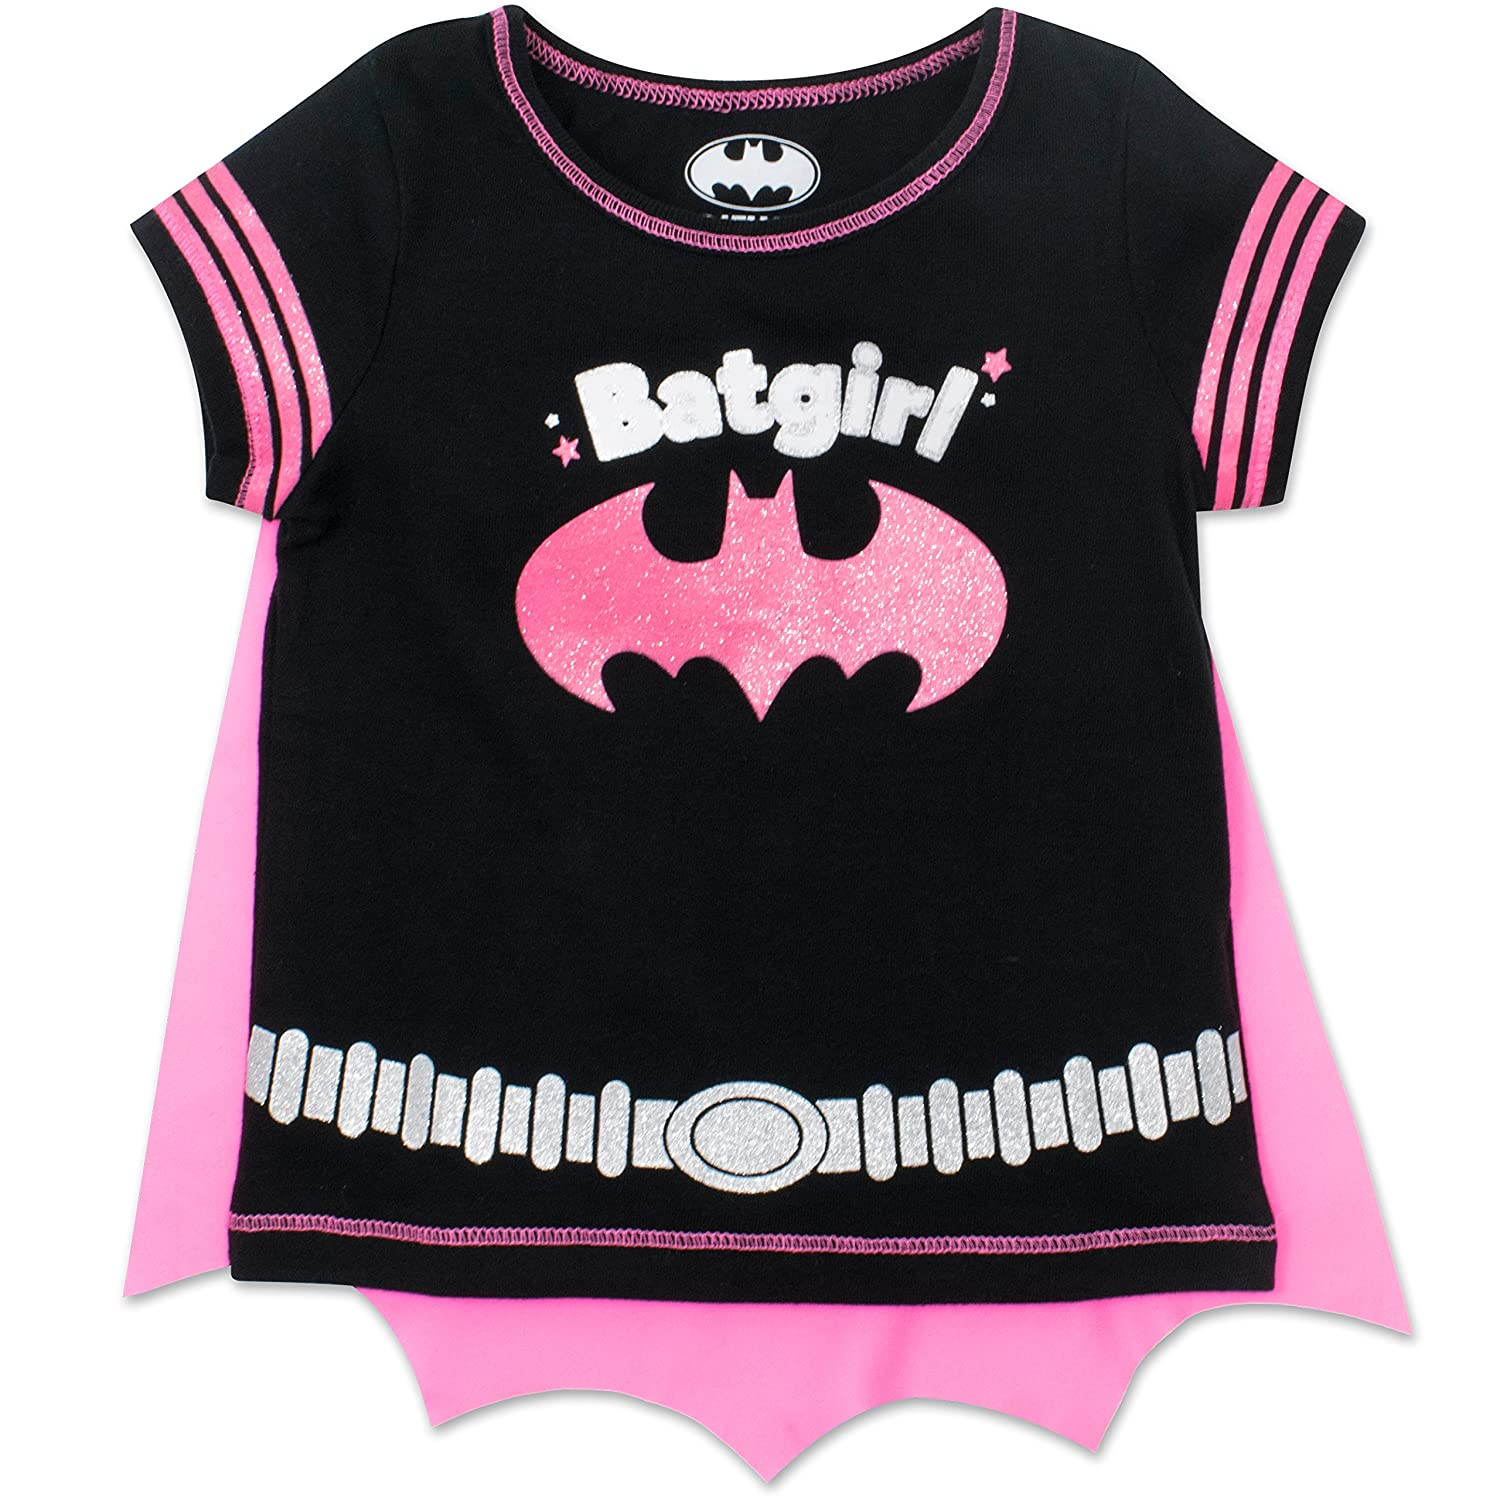 Warner Bros. Batgirl Toddler Girls' T-Shirt with Cape, Black Black (4T)